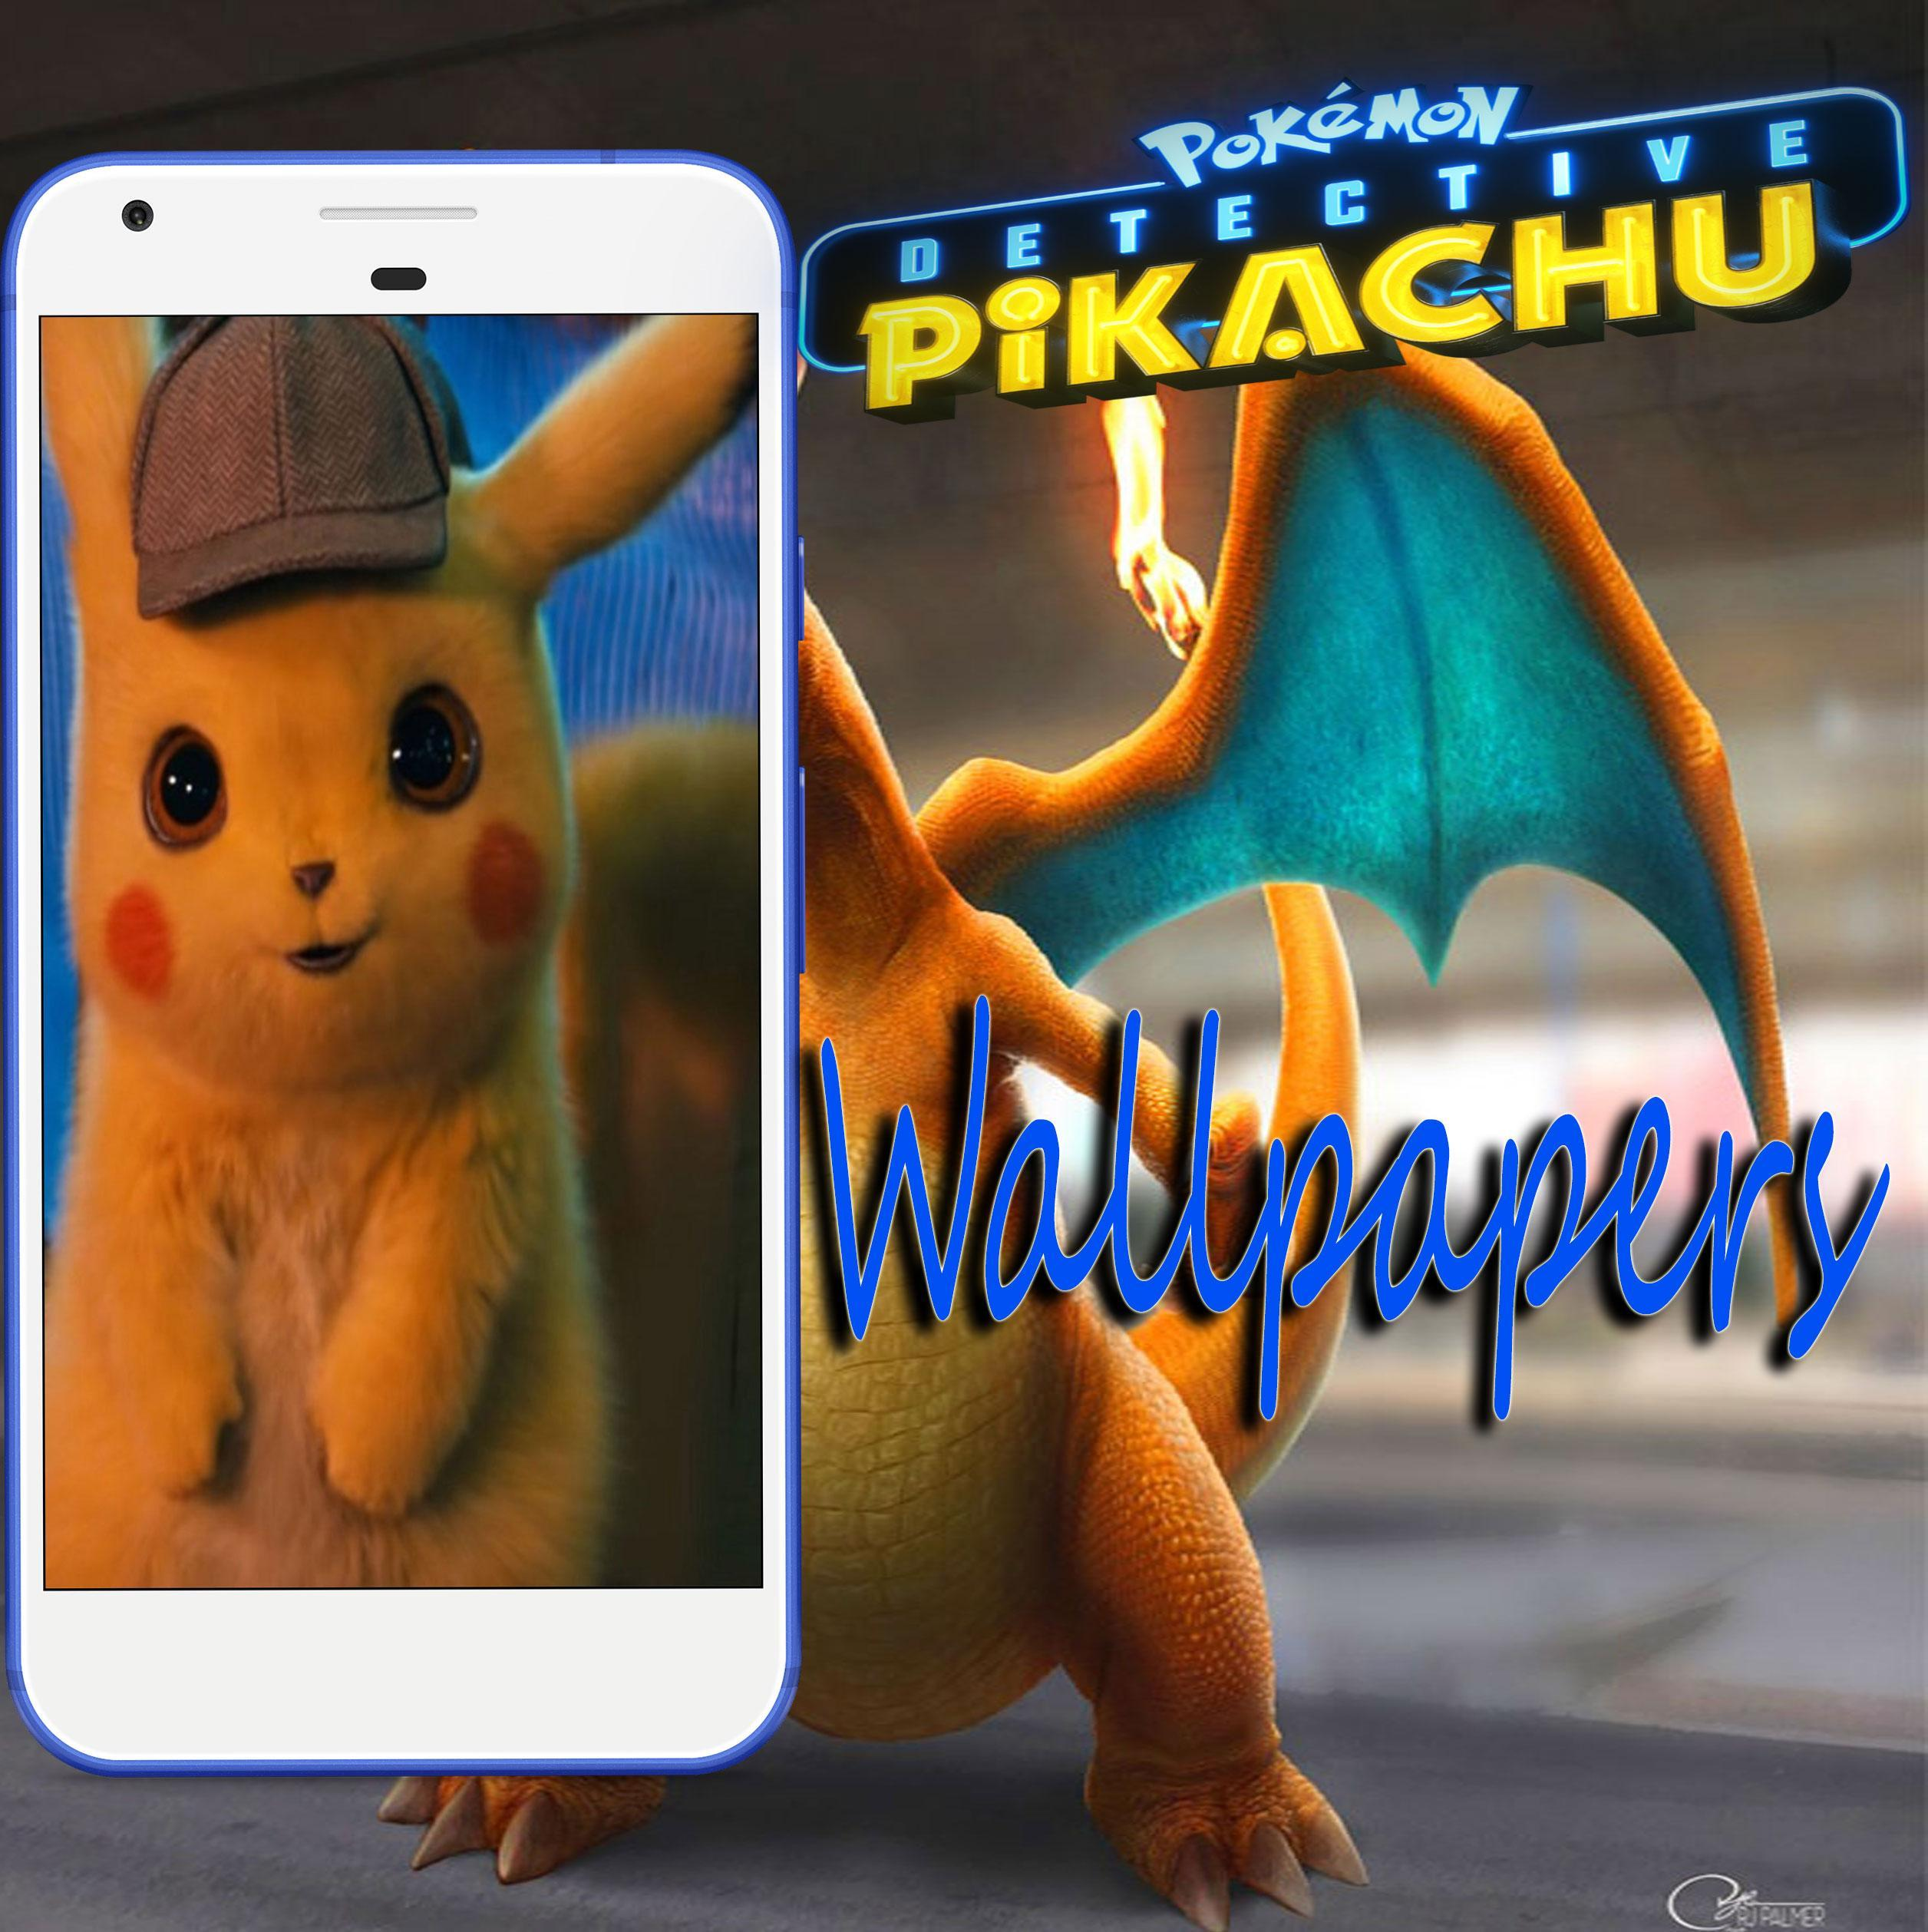 Pokemon Detective Pikachu 4k Wallpapers Offline For Android Apk